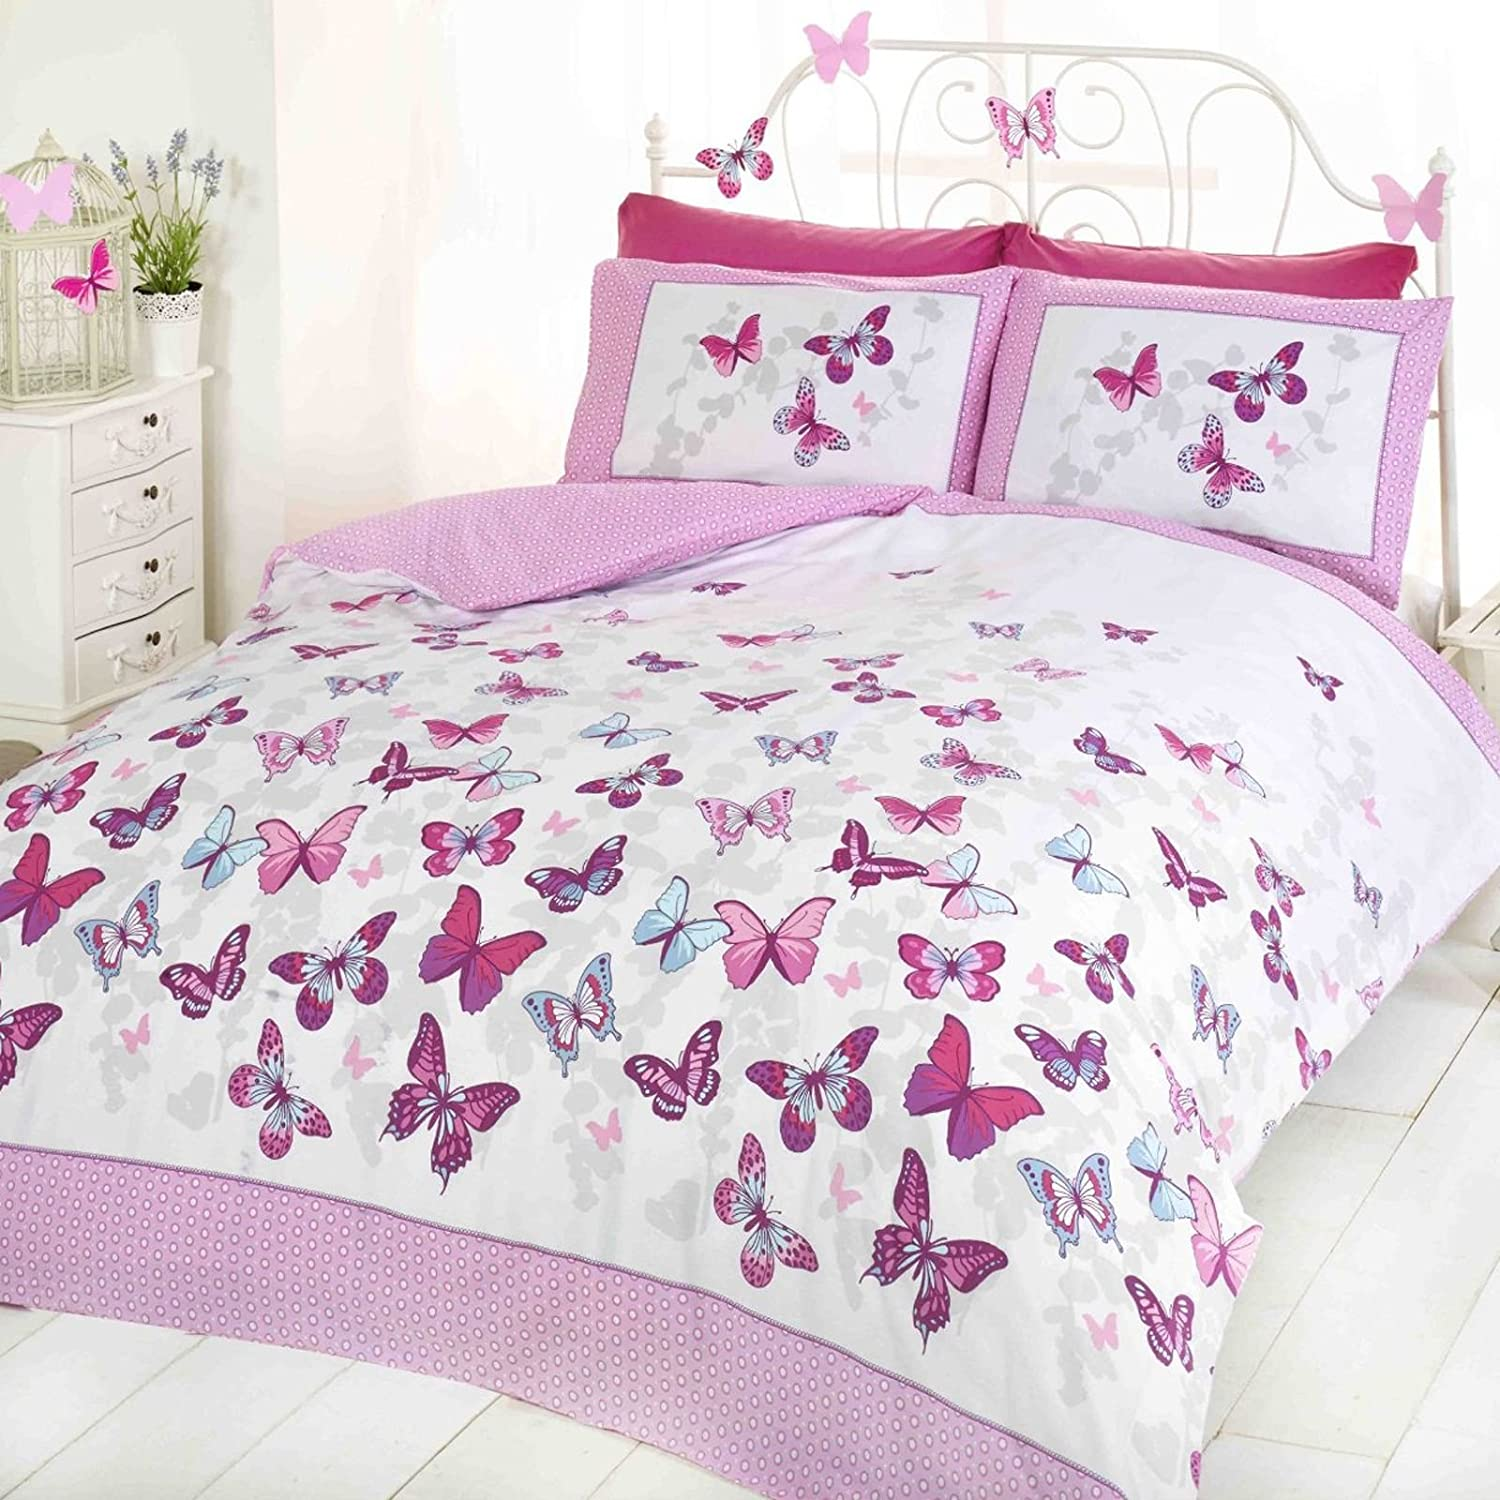 Butterfly Duvet Set - Pink - Double Bed Size Bedding Cover Set by Blast Off Rapport 5027491037709